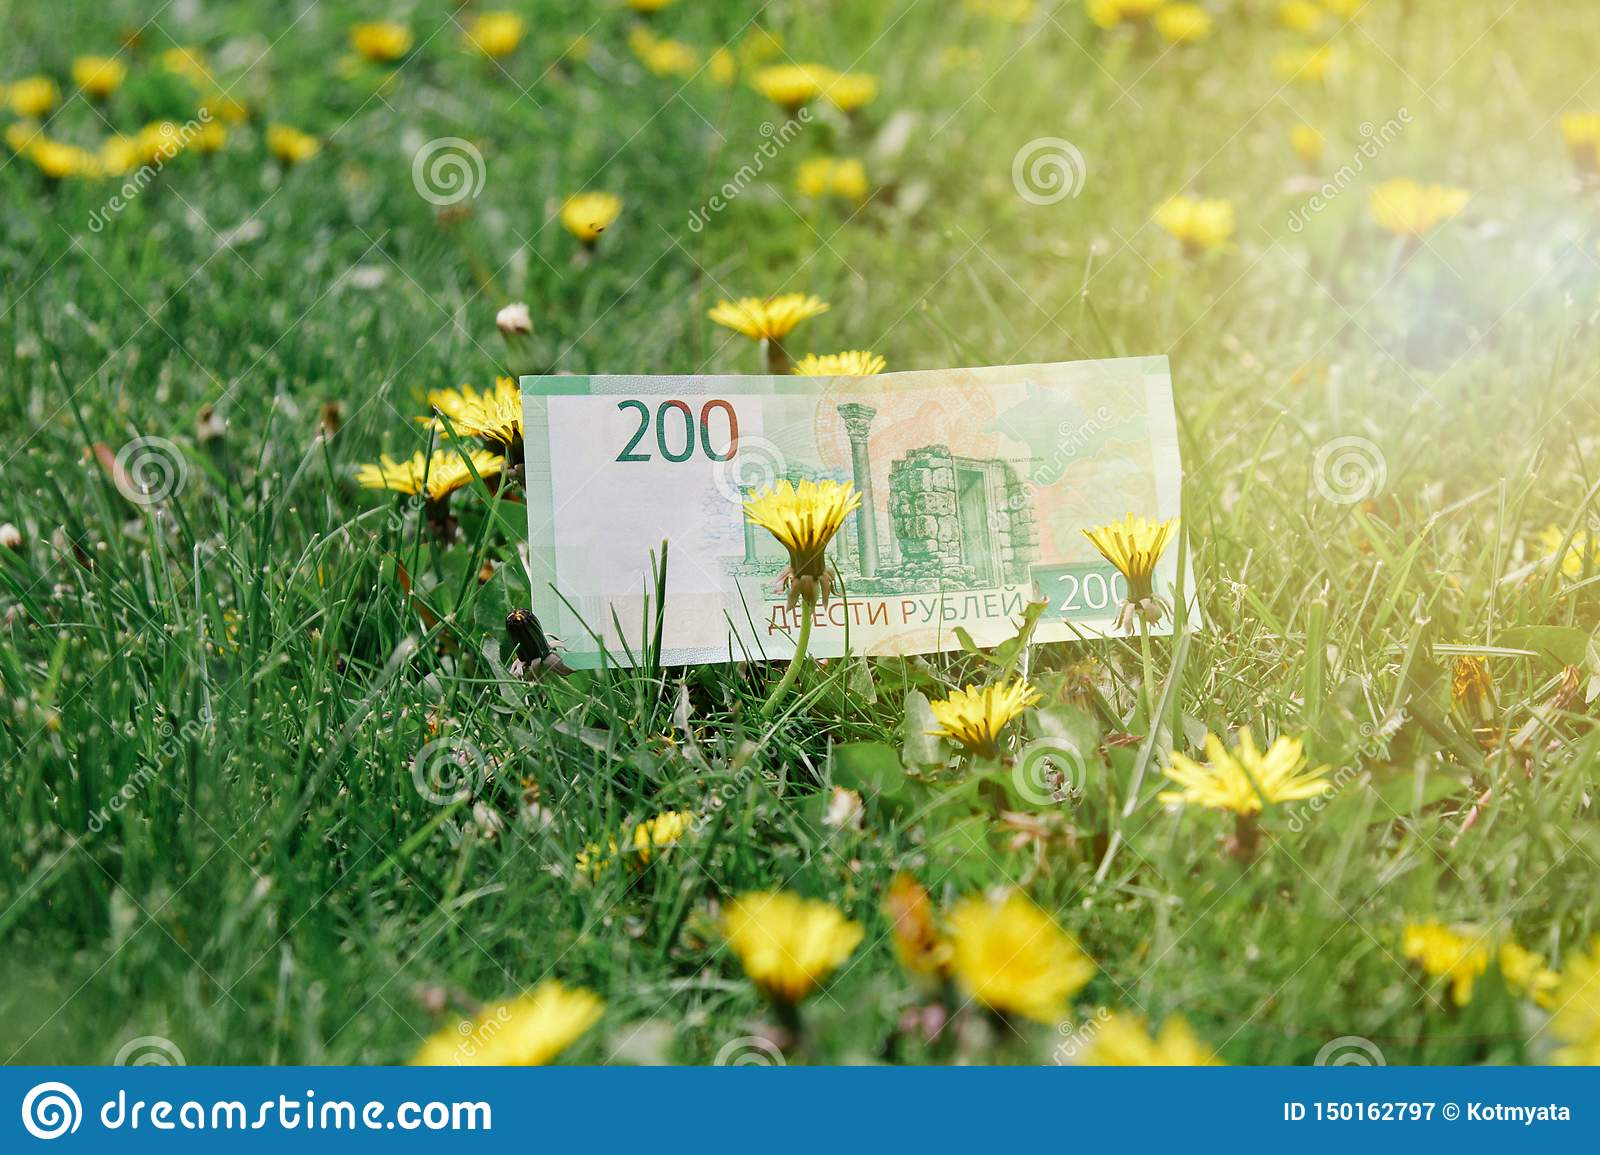 Russian rubles on green grass and dandelion fields